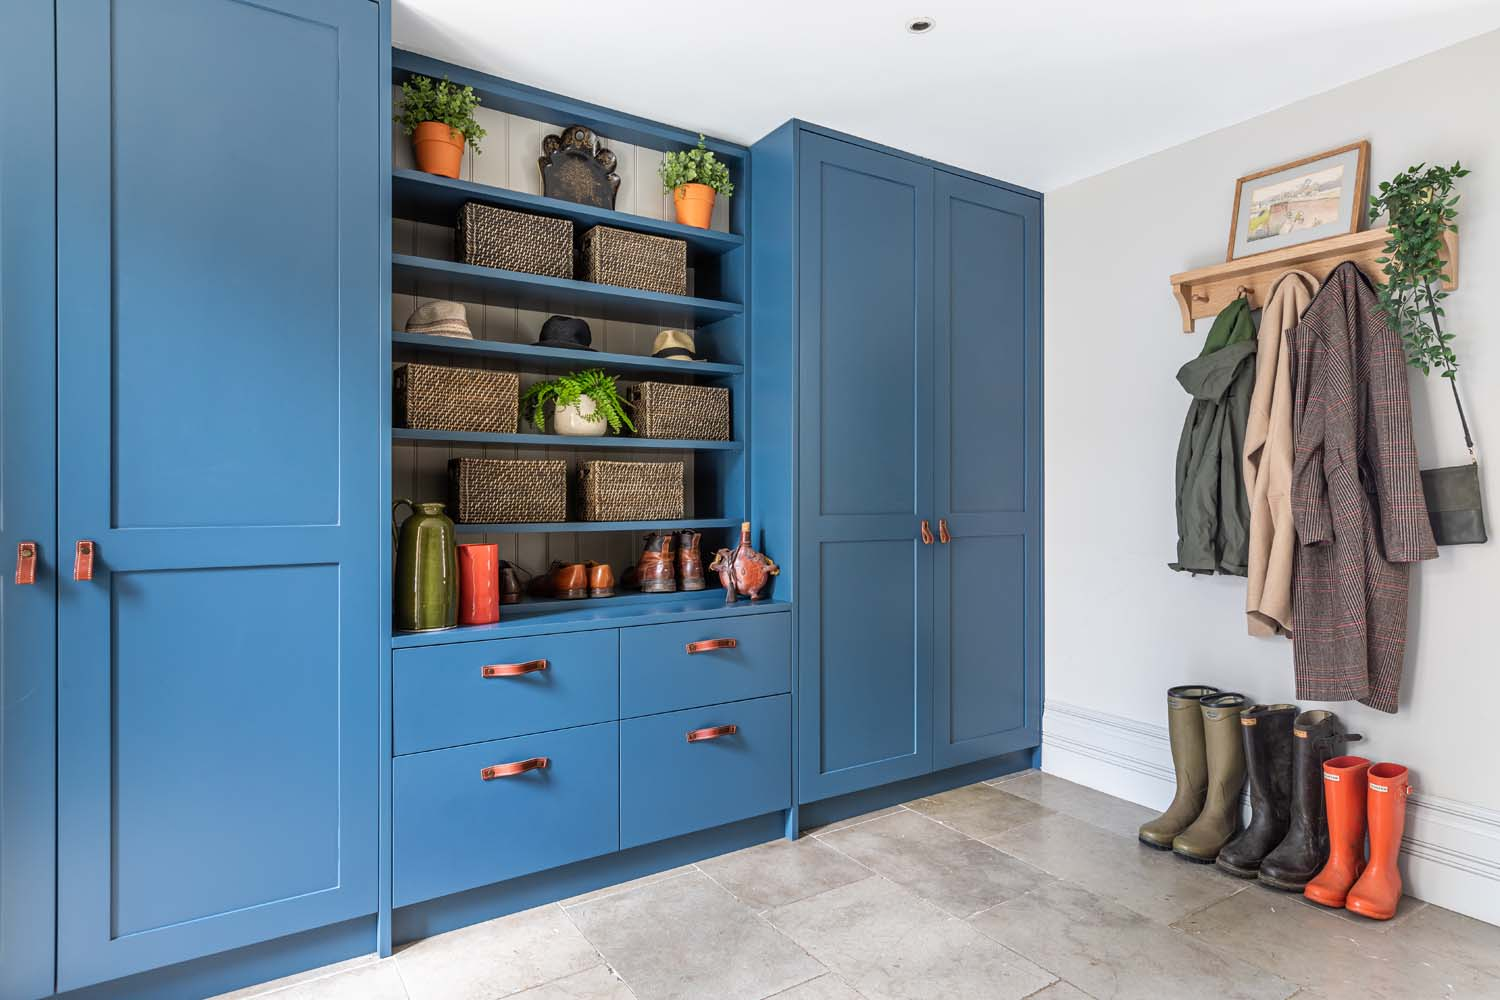 Bespoke boot room joinery in Farrow & Ball Stifkey Blue, wooden coat rack with coats and wellington boots, limestone floor